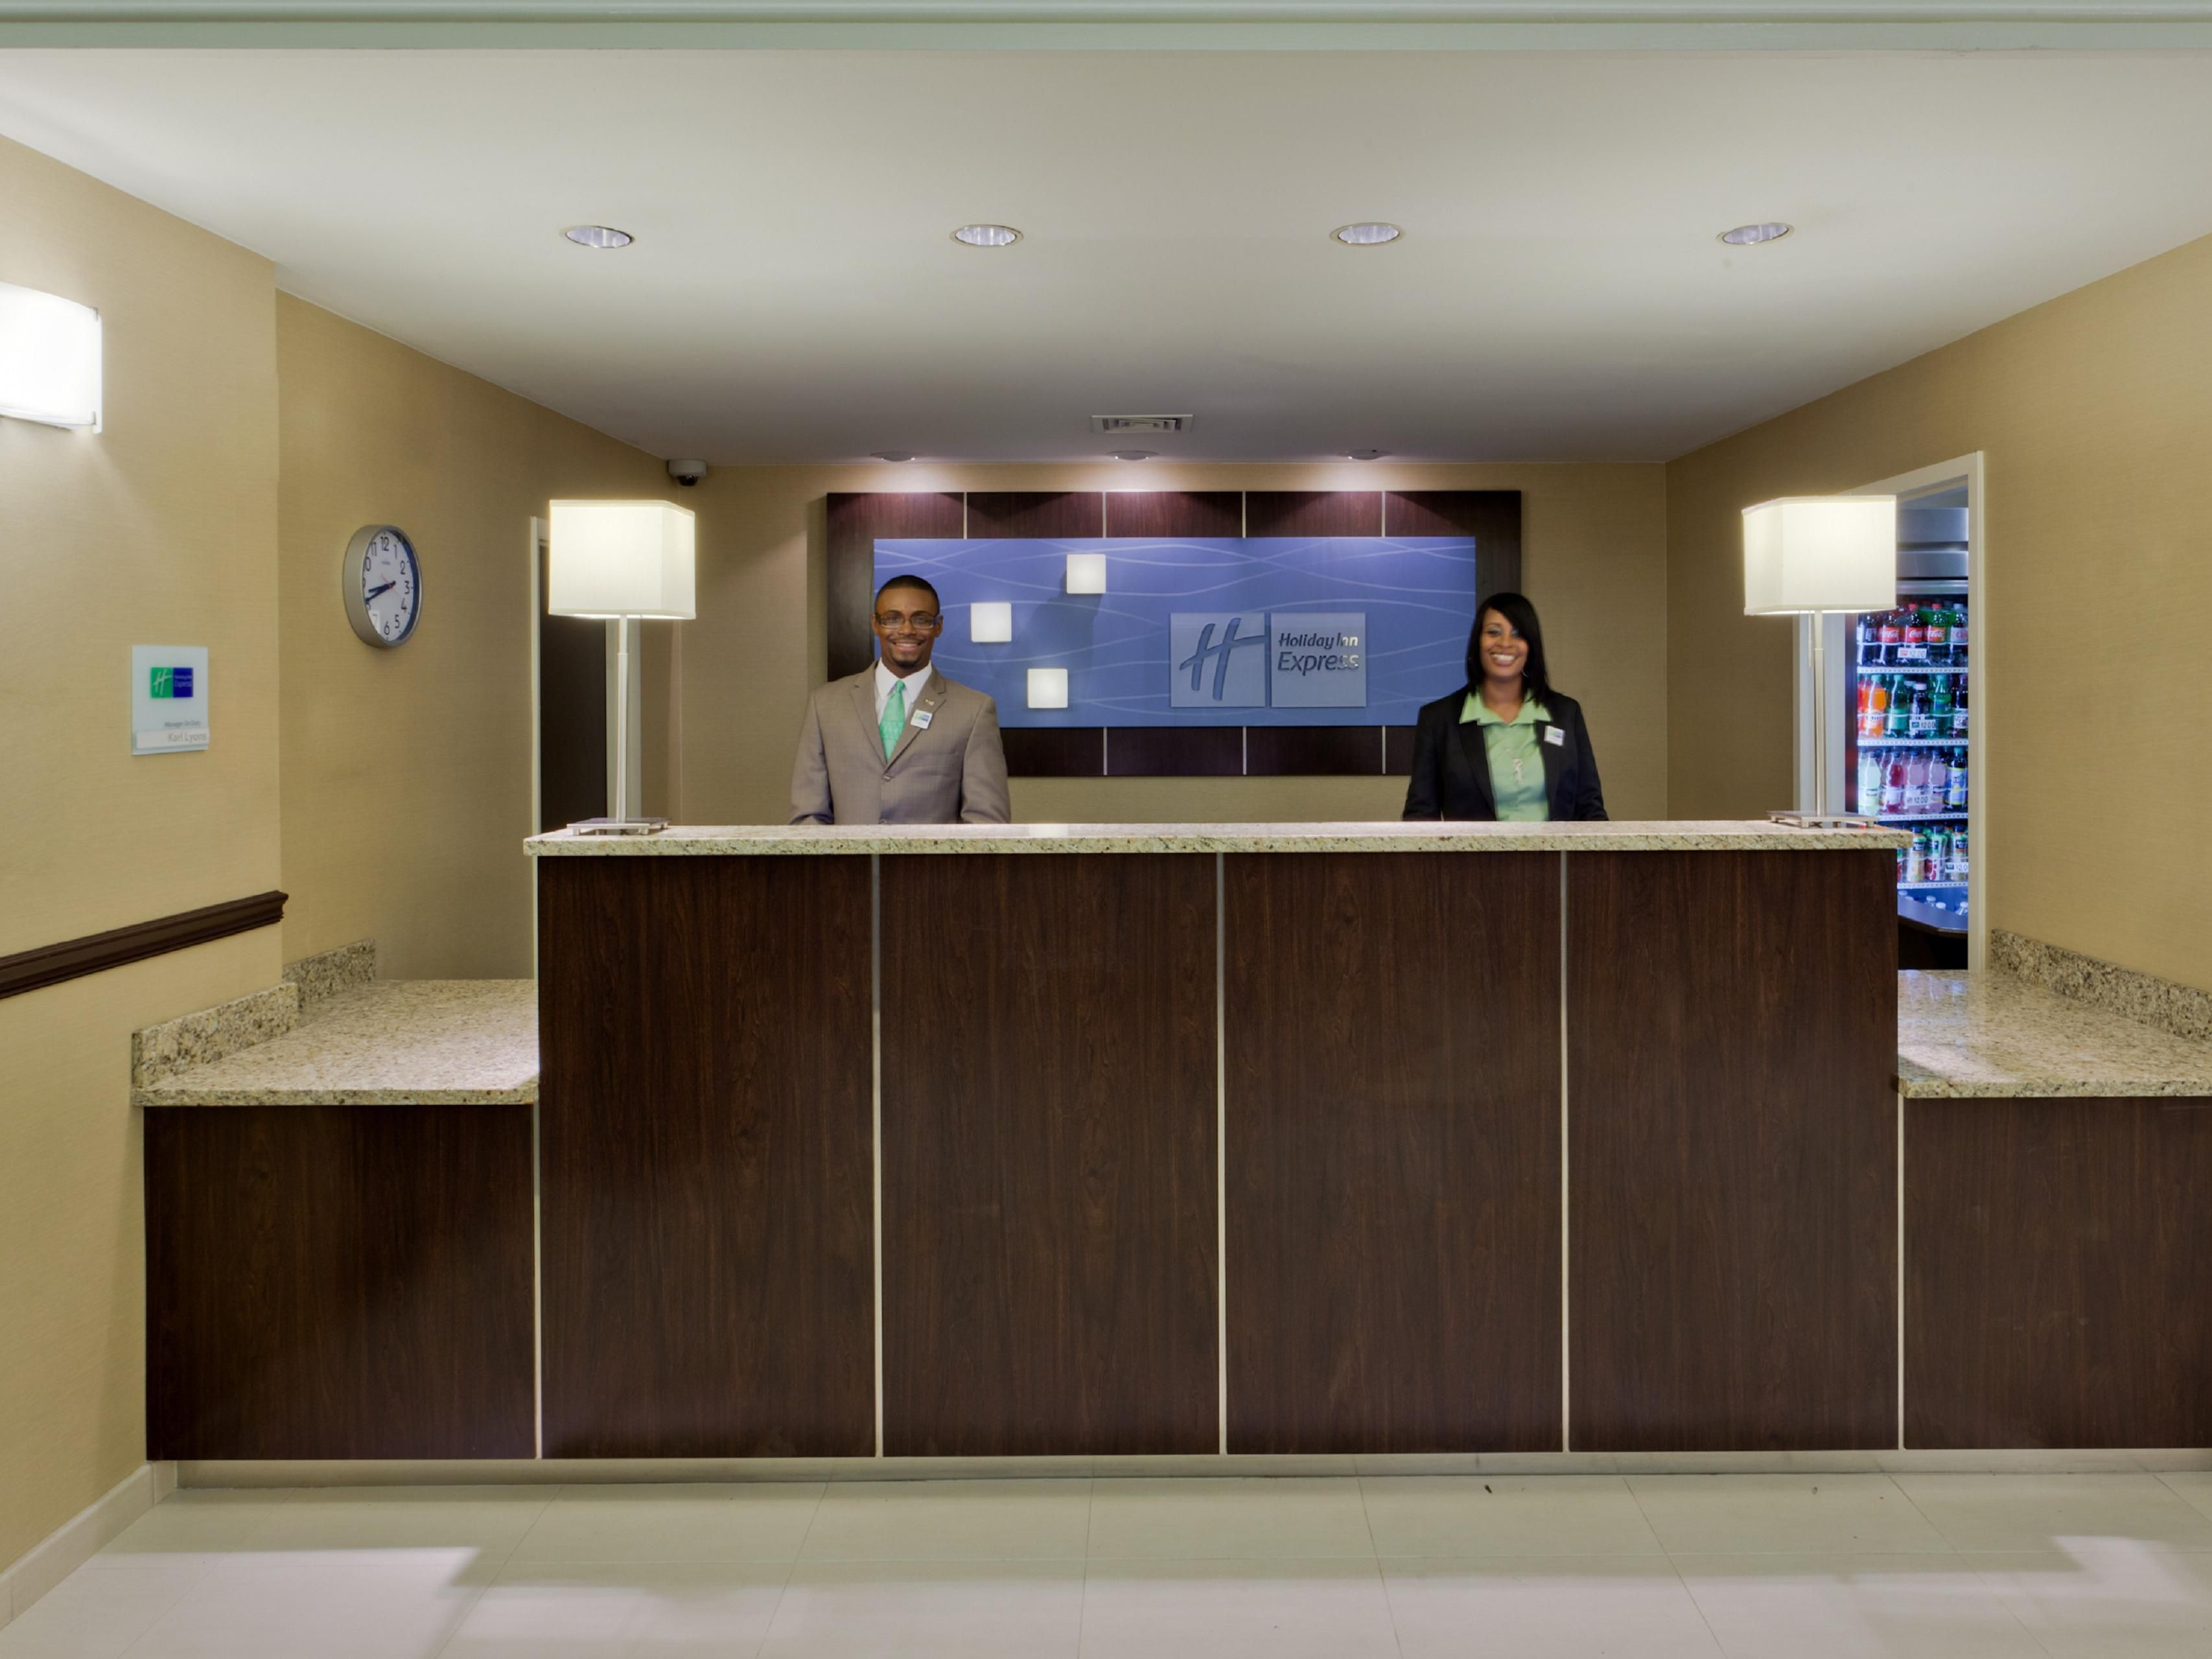 Welcome to the Holiday Inn Express BWI Airport West